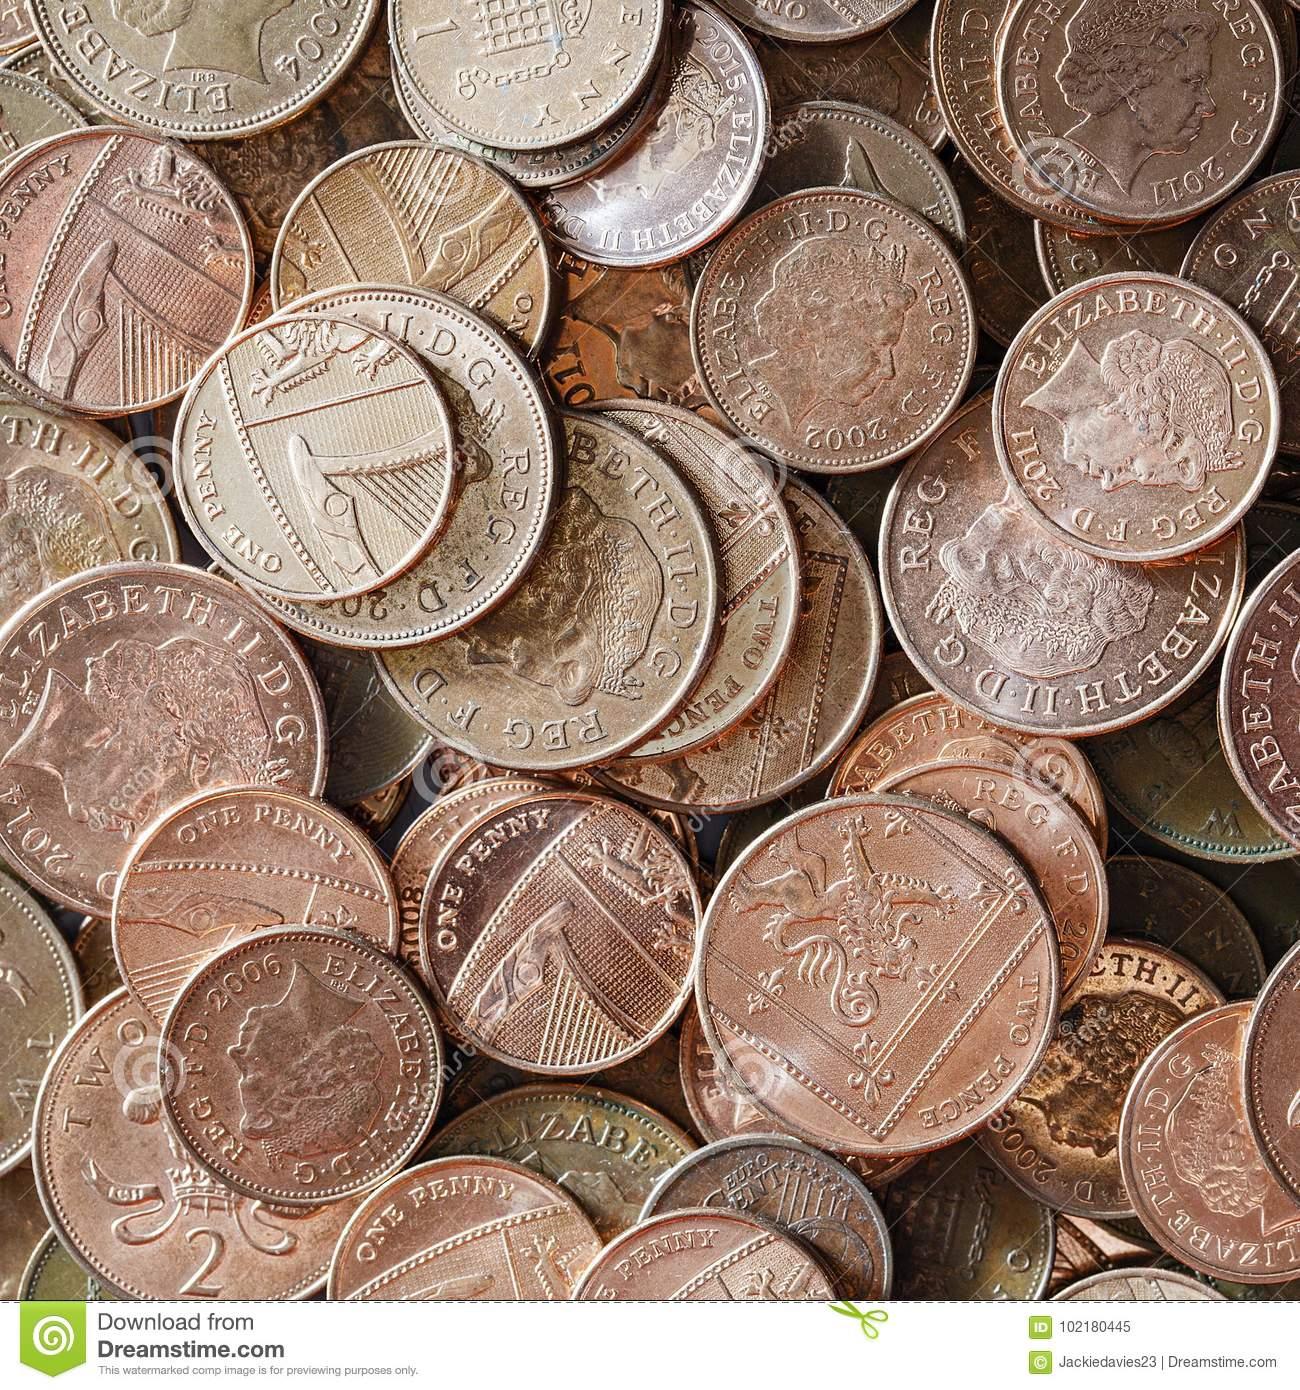 British Coins stock image  Image of cash, pence, british - 102180445